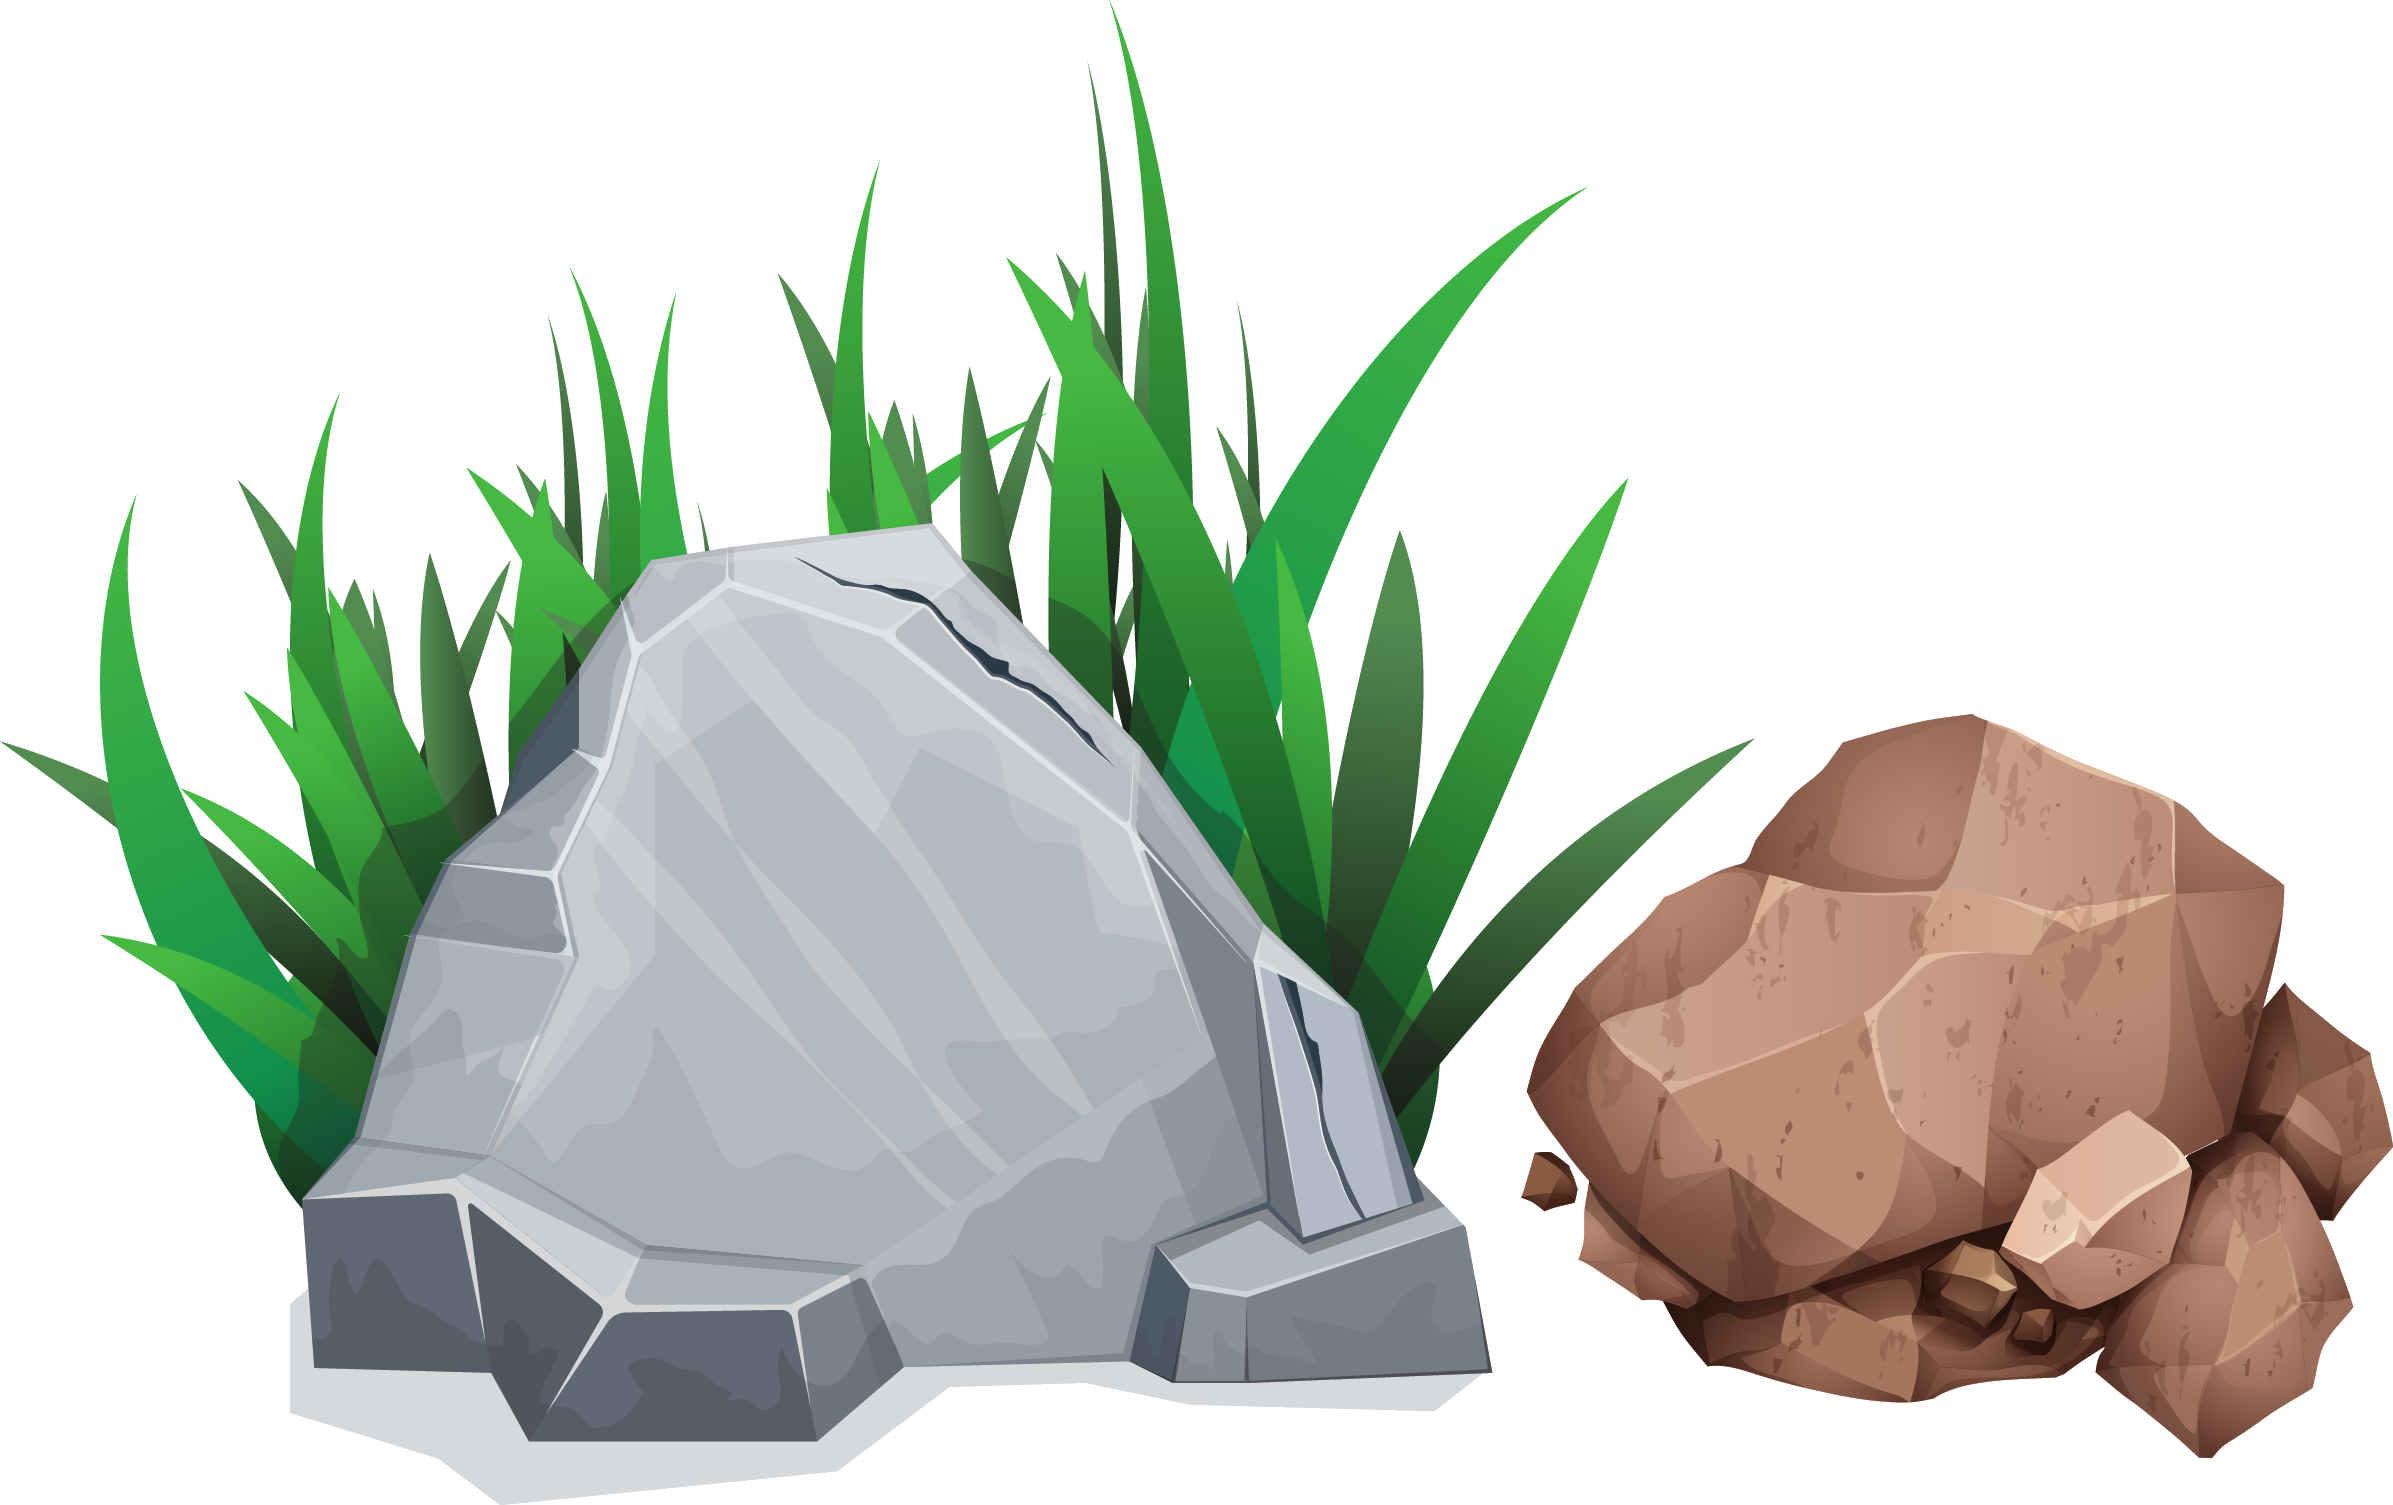 Boulder clipart soil. For free and use